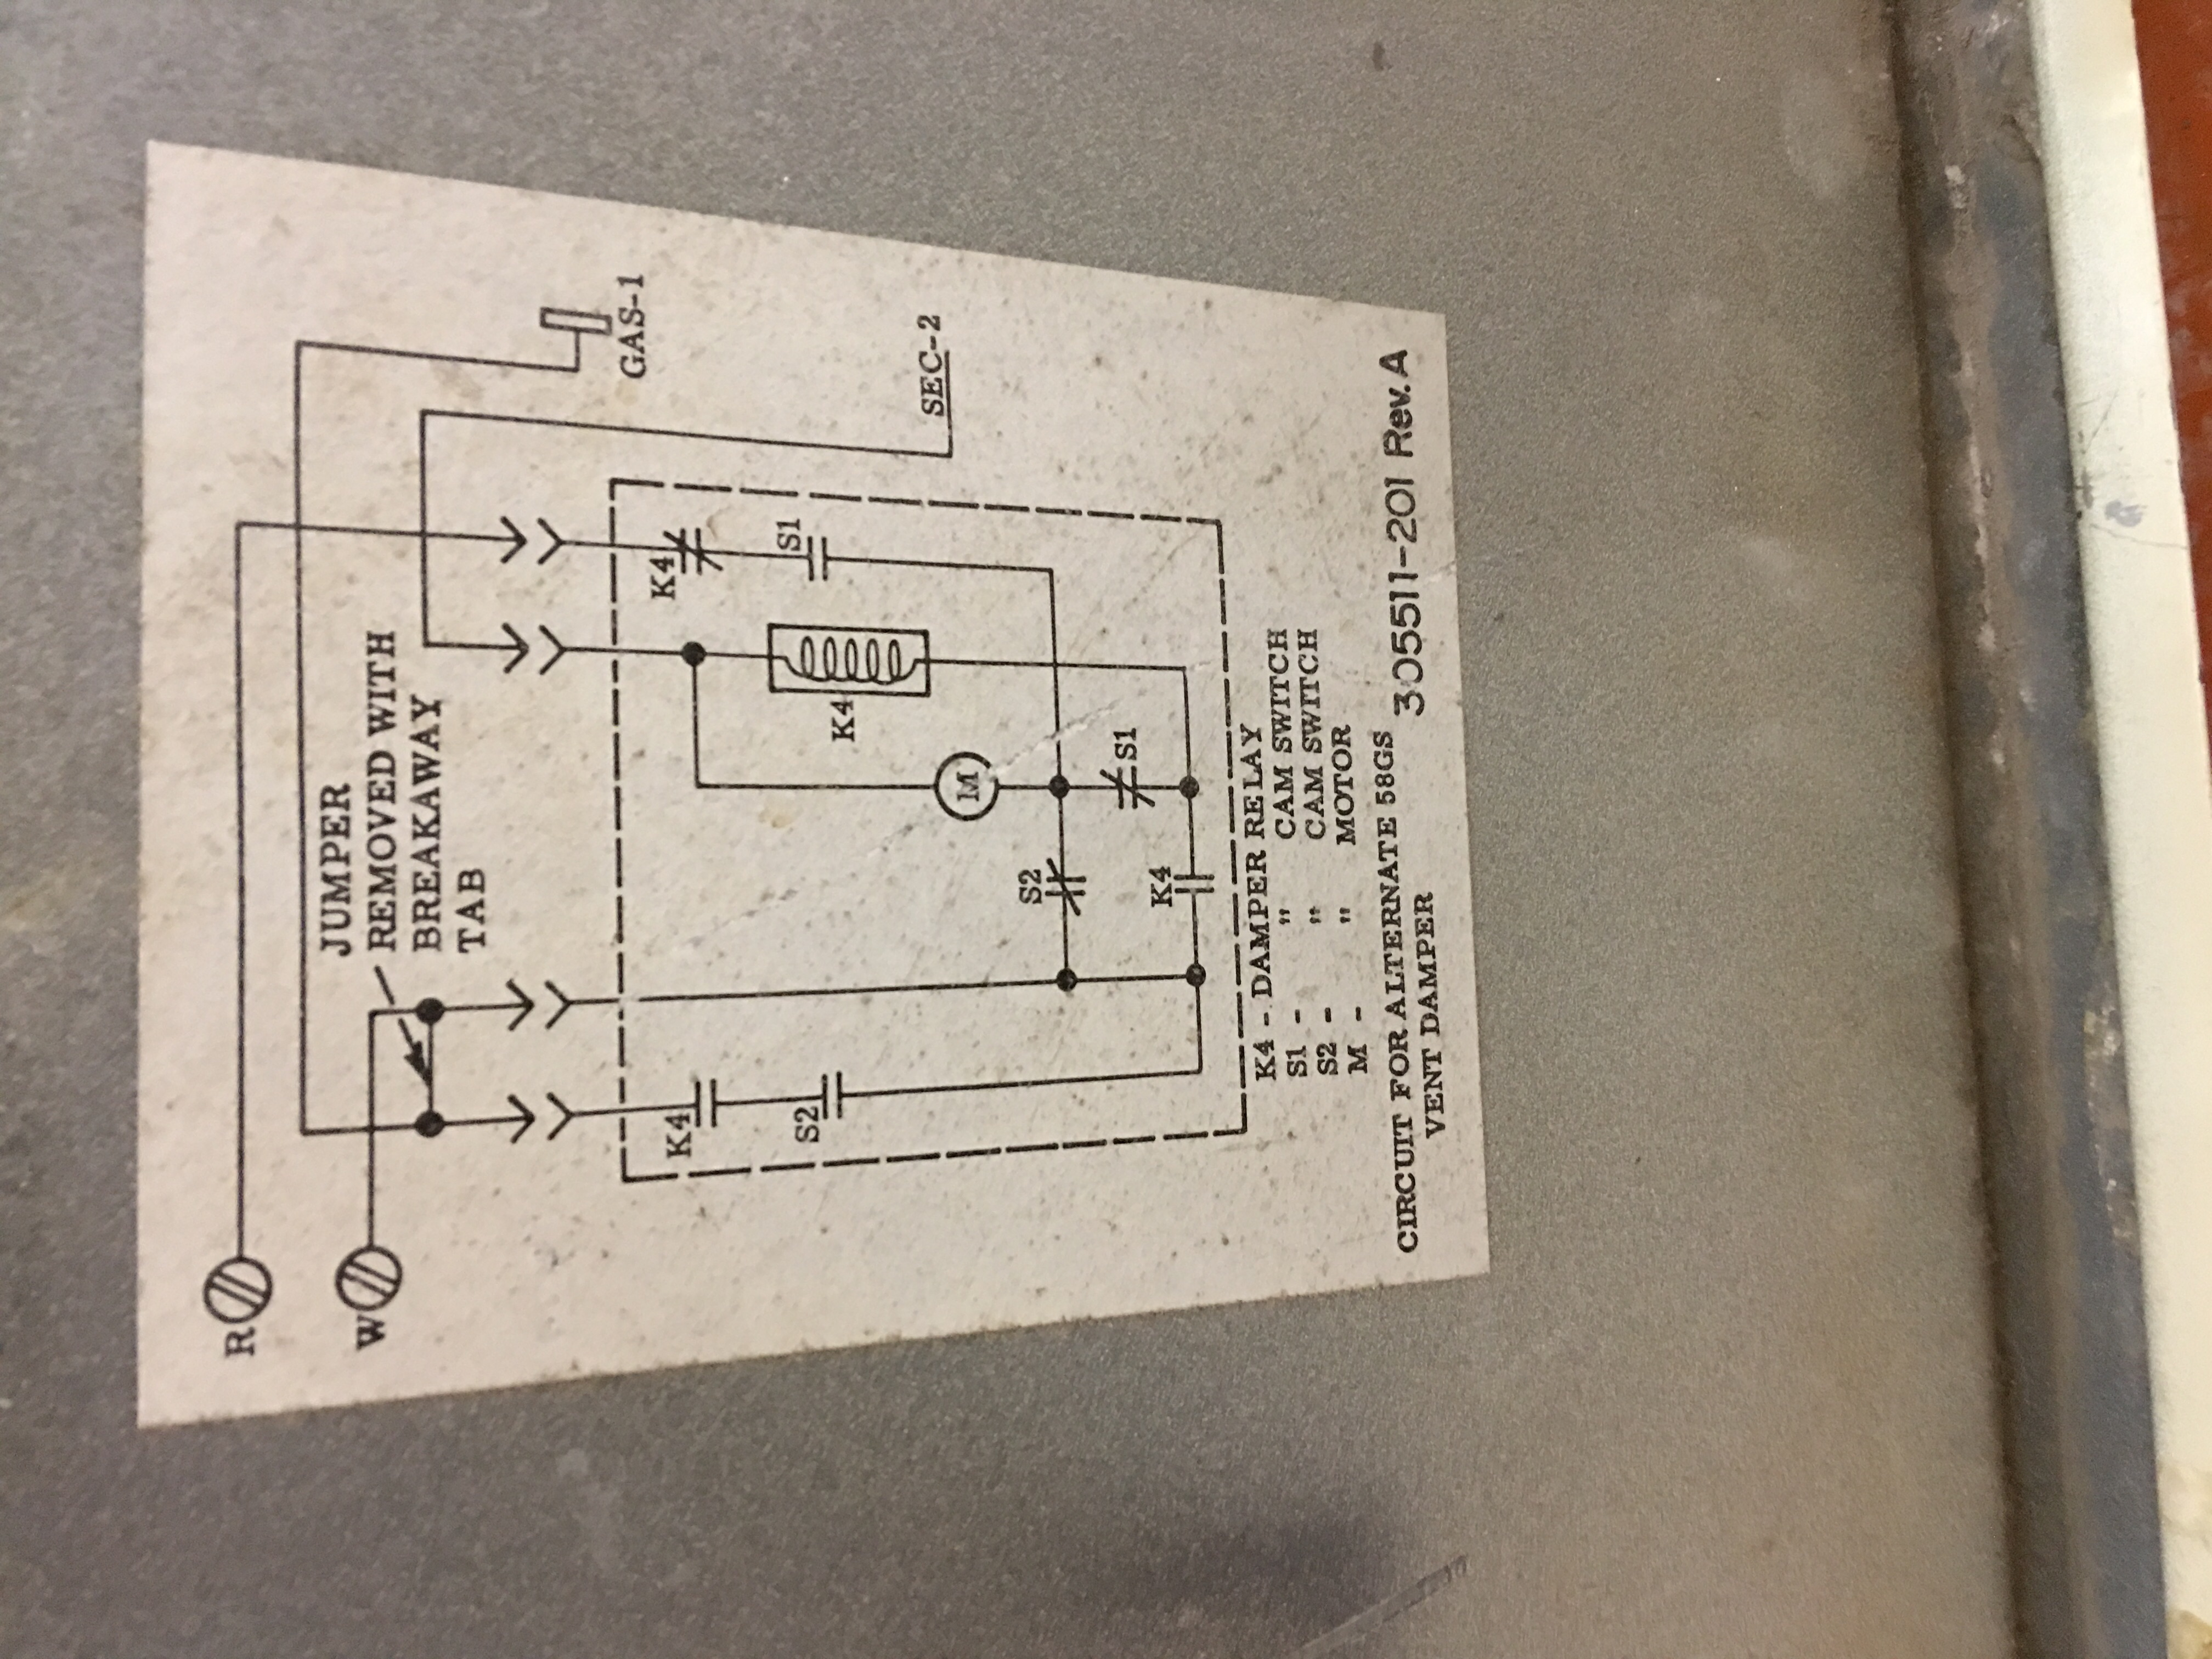 I Have A Furnace Believe Model Number 305318 201 Rev Need The Vent Damper Wiring Diagram Image